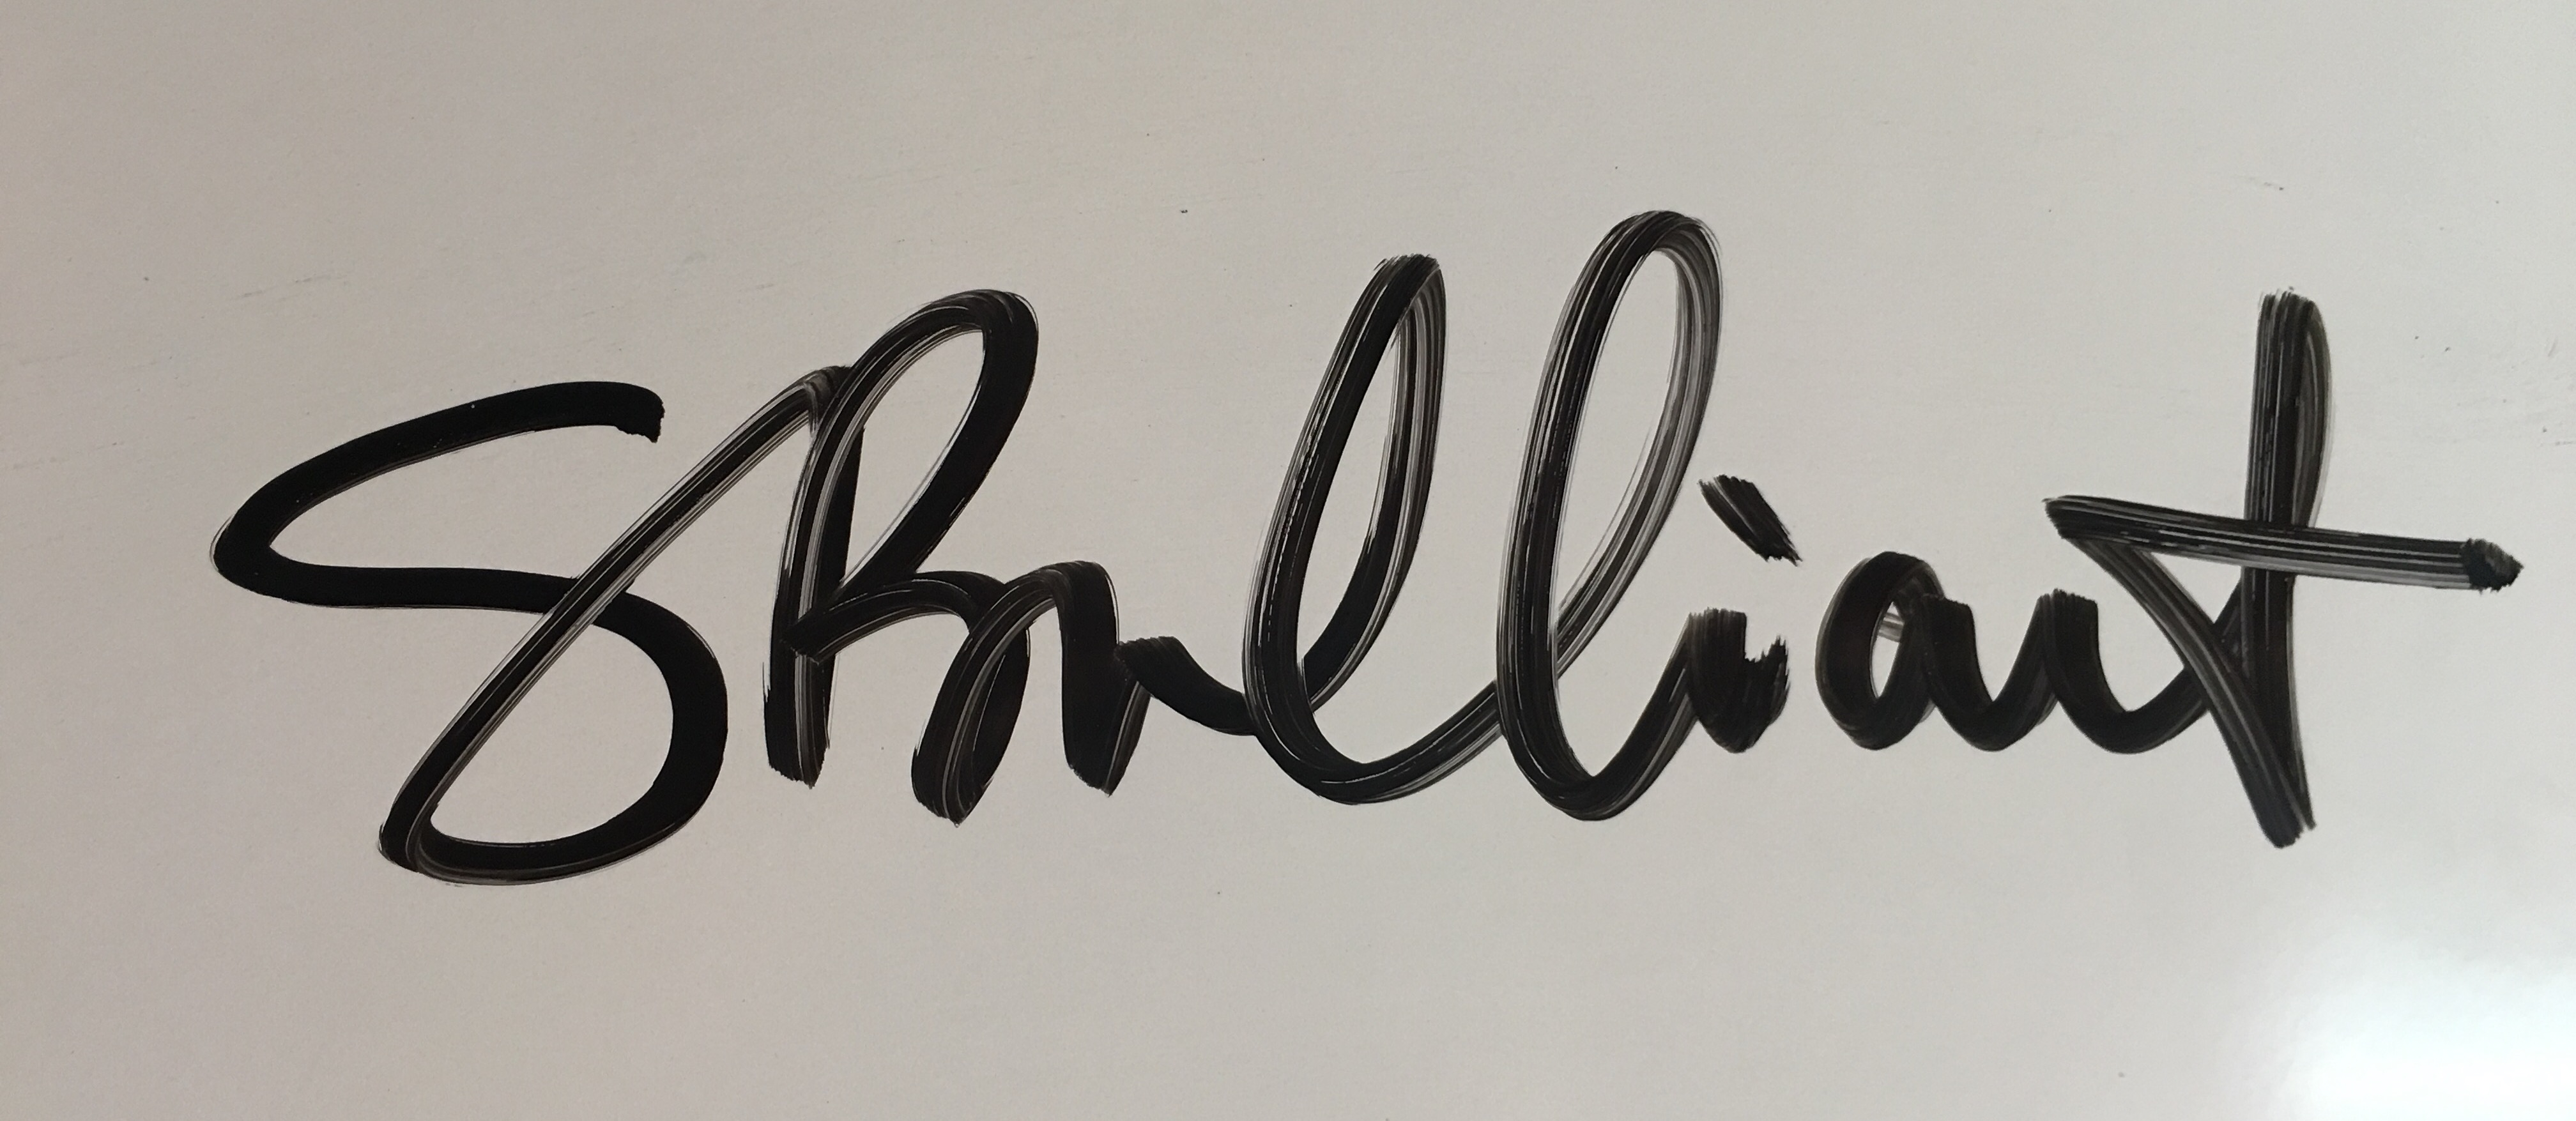 Sherry Brilliant's Signature